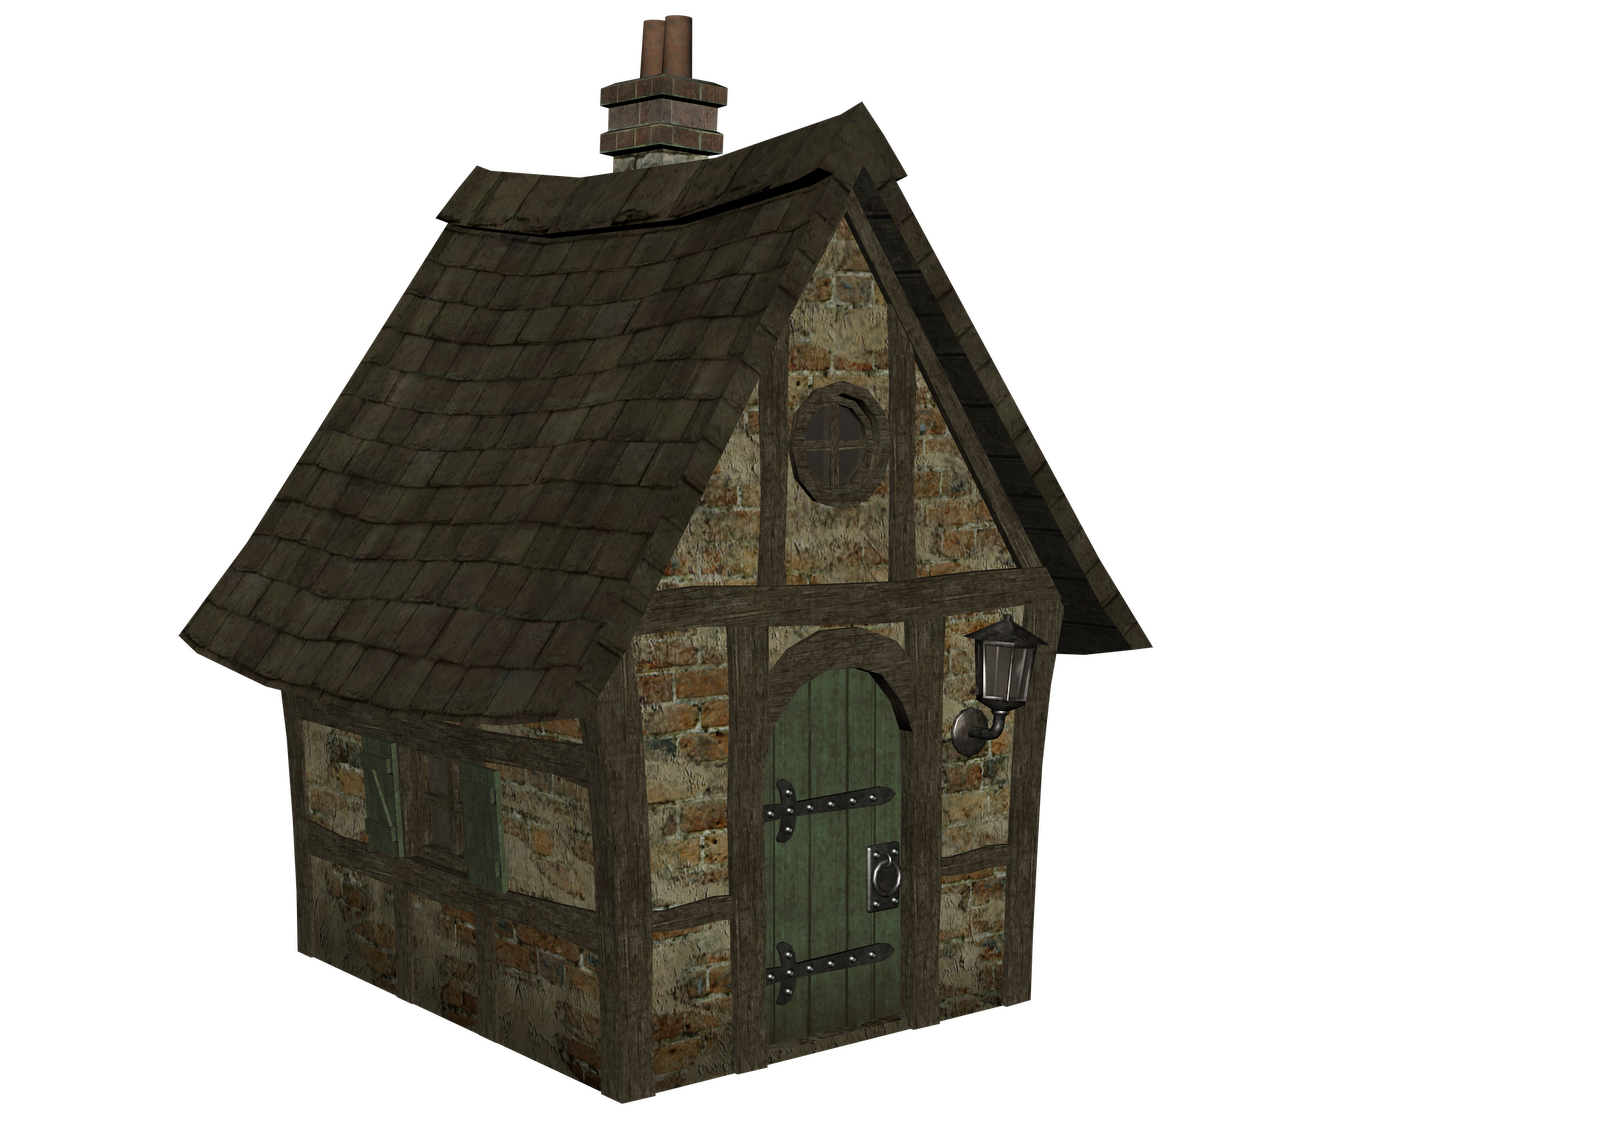 Medieval architecture house clip. Houses clipart middle ages